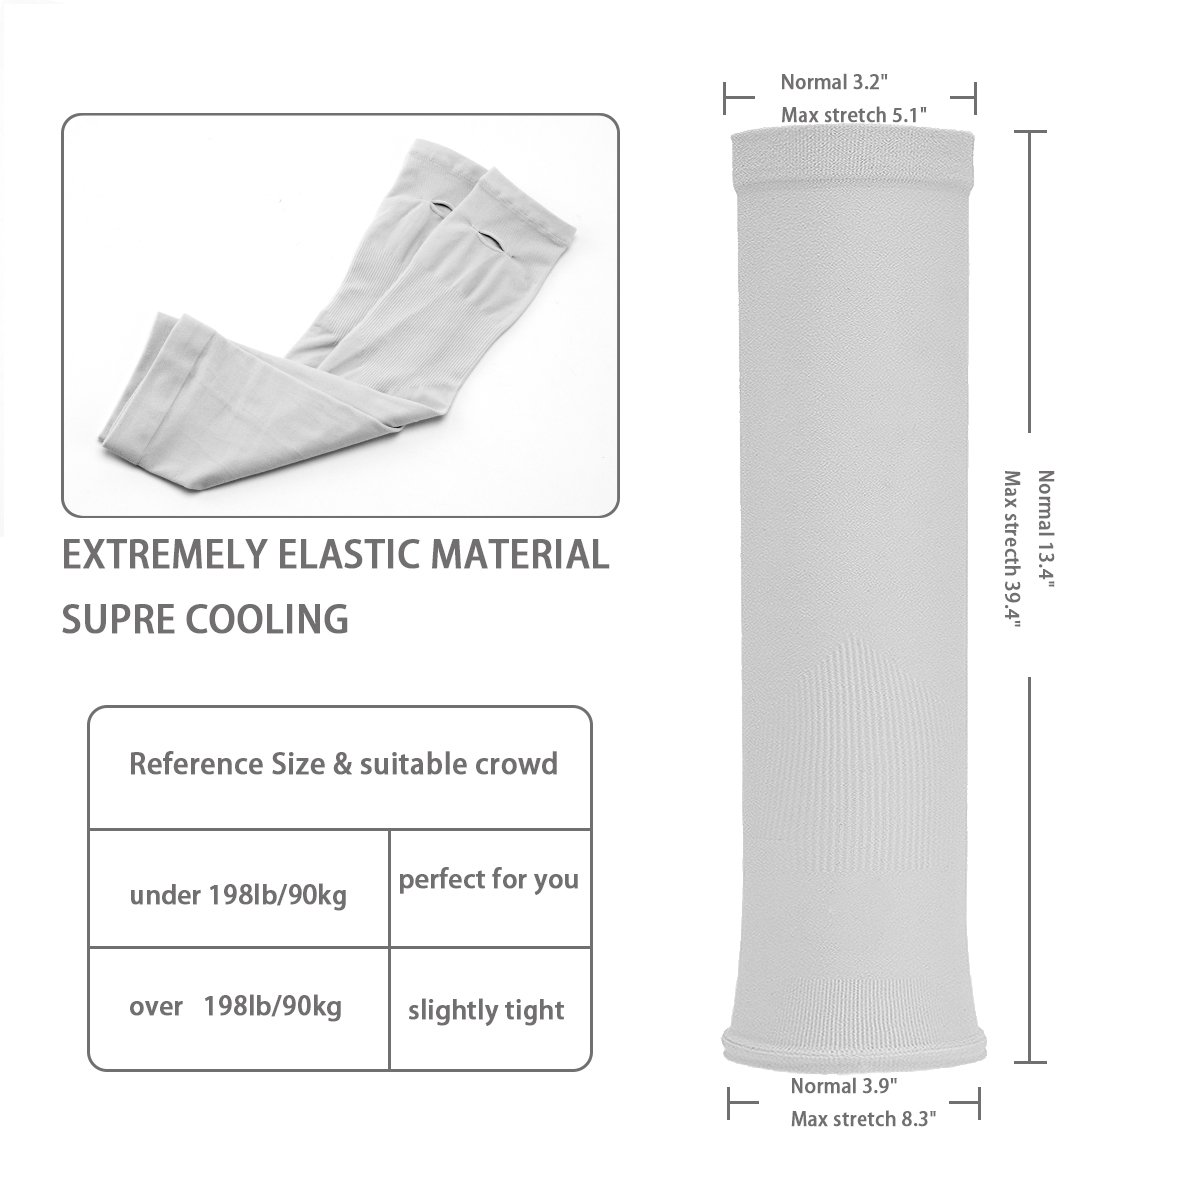 LISALIFE UV Sun Protection Cooling Arm Sleeves for Men & Women - Unisex Sun Sleeves Cover With Thumb Hole for Cycling,Running,Driving,Basketball,Hiking,Golf & Outdoor Activities(8 Pairs) by LISALIFE (Image #2)